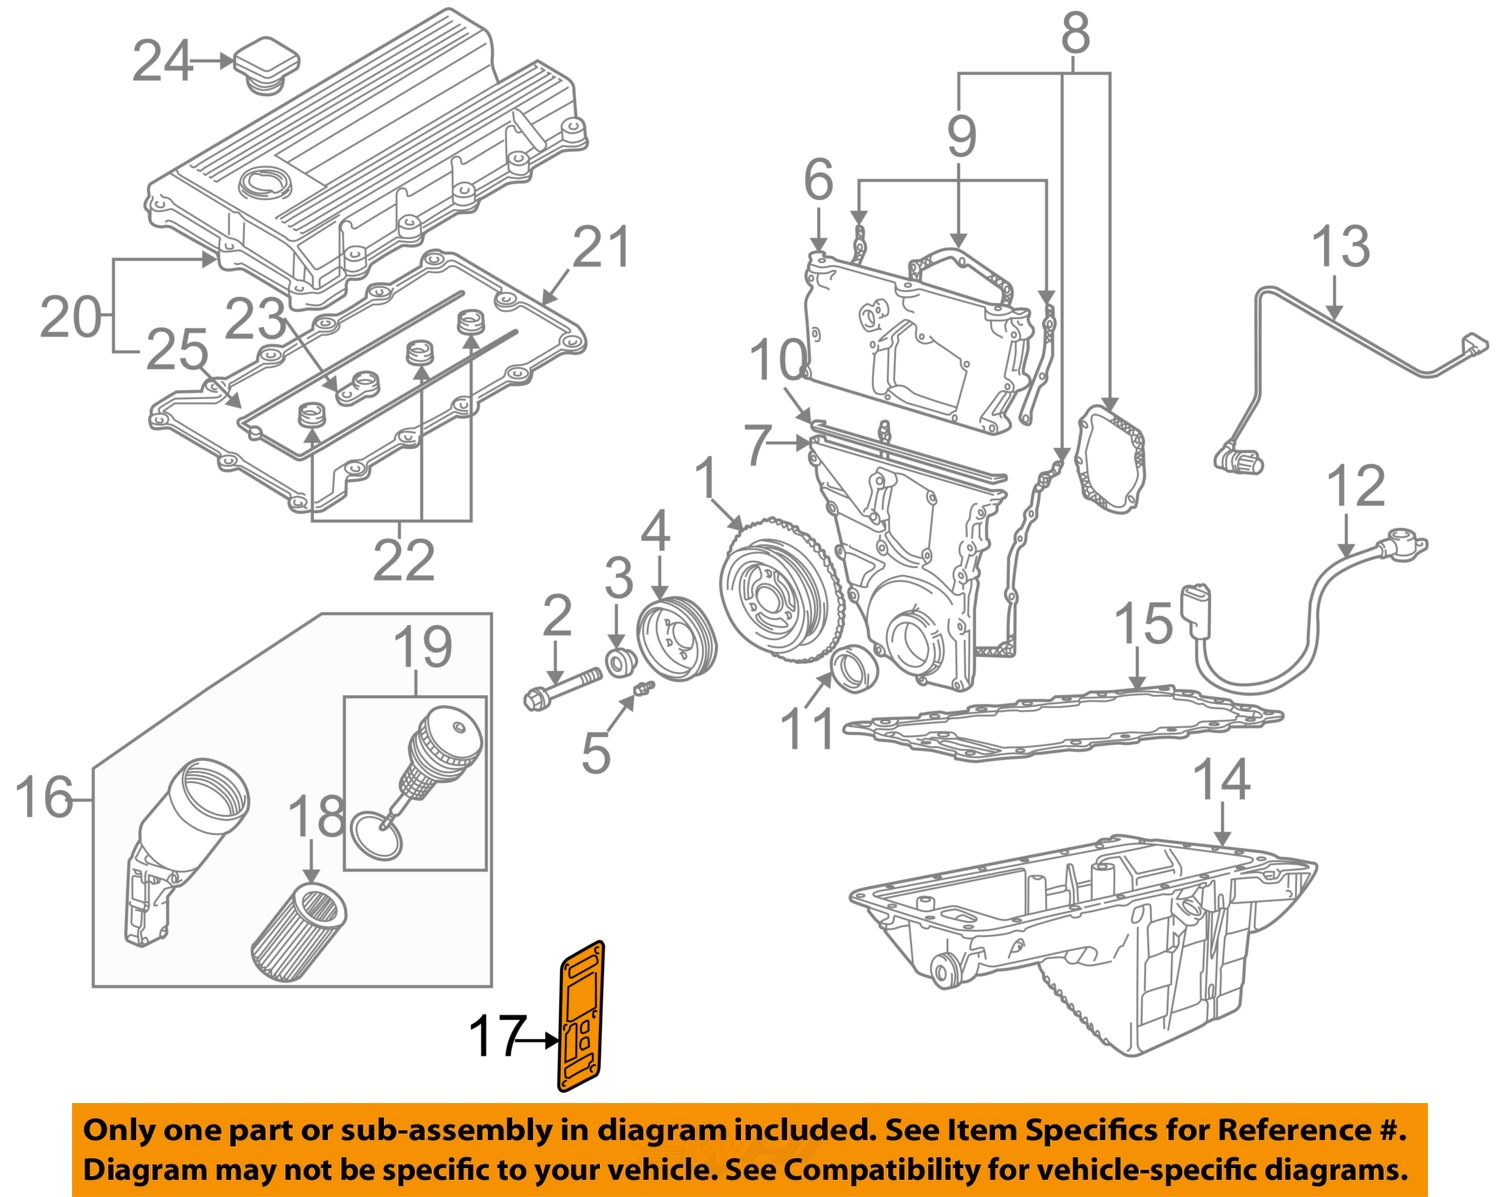 Bmw Z3 Oem Parts Parts Bmw Z3 Oil Pan Oem Parts Regarding Bmw Parts Bmw Z3 Oem Parts Diagram